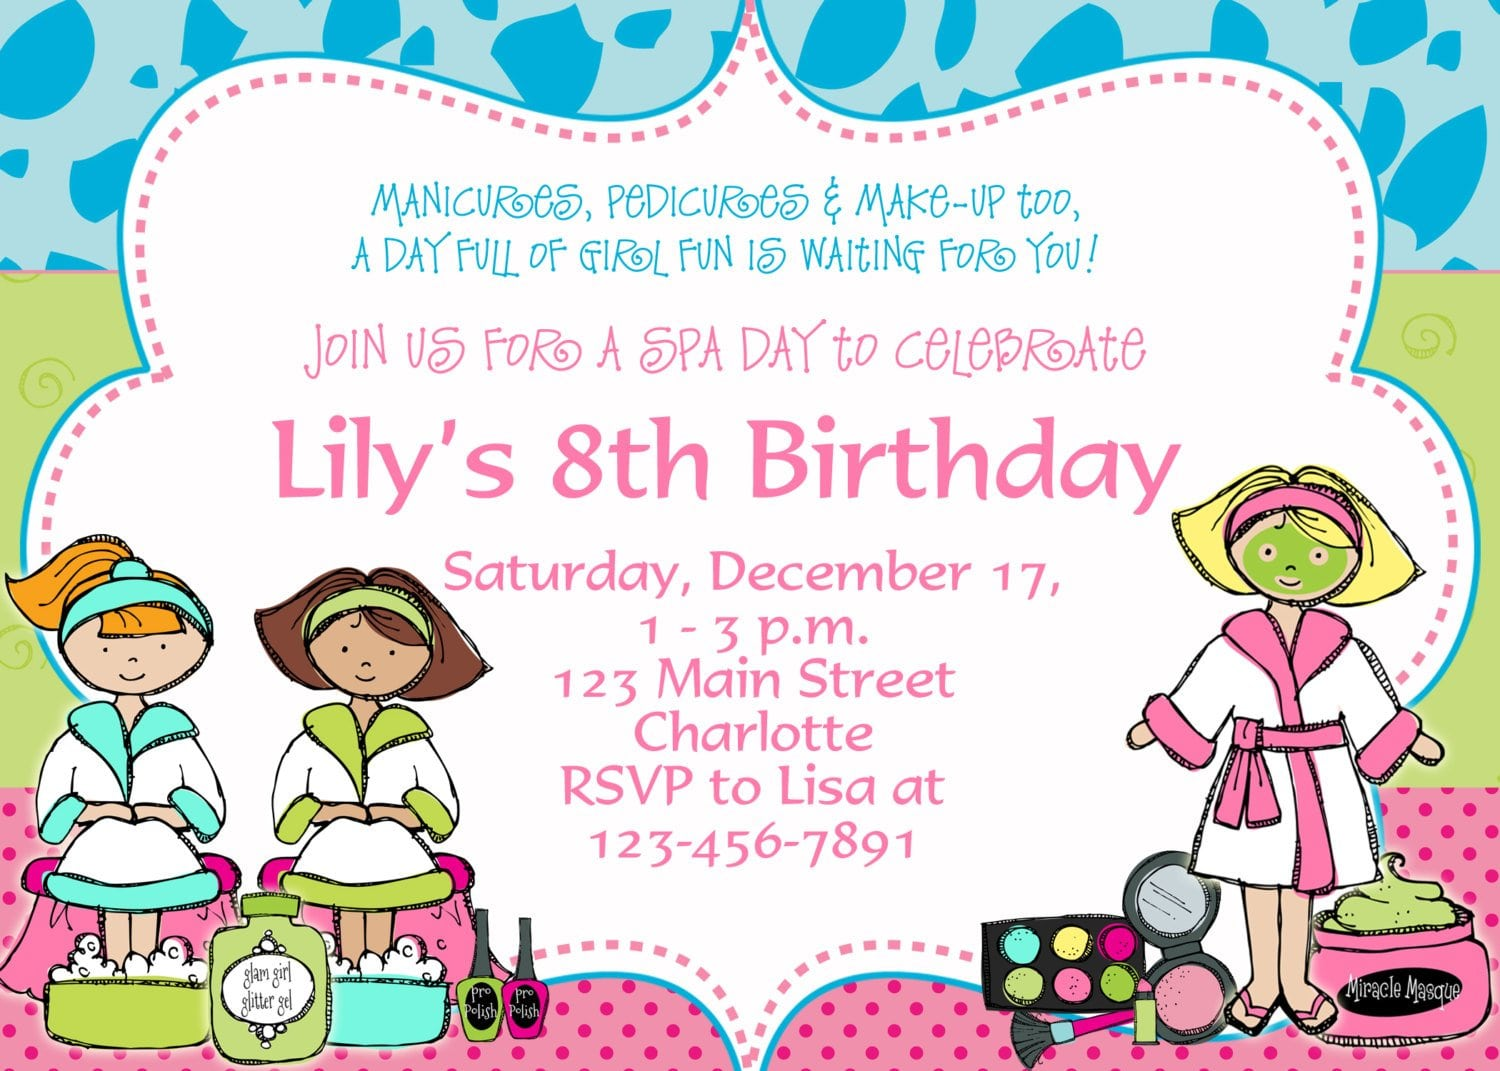 birthday party templatesFree Printable Spa Birthday Party Invitations xgGSzWa3